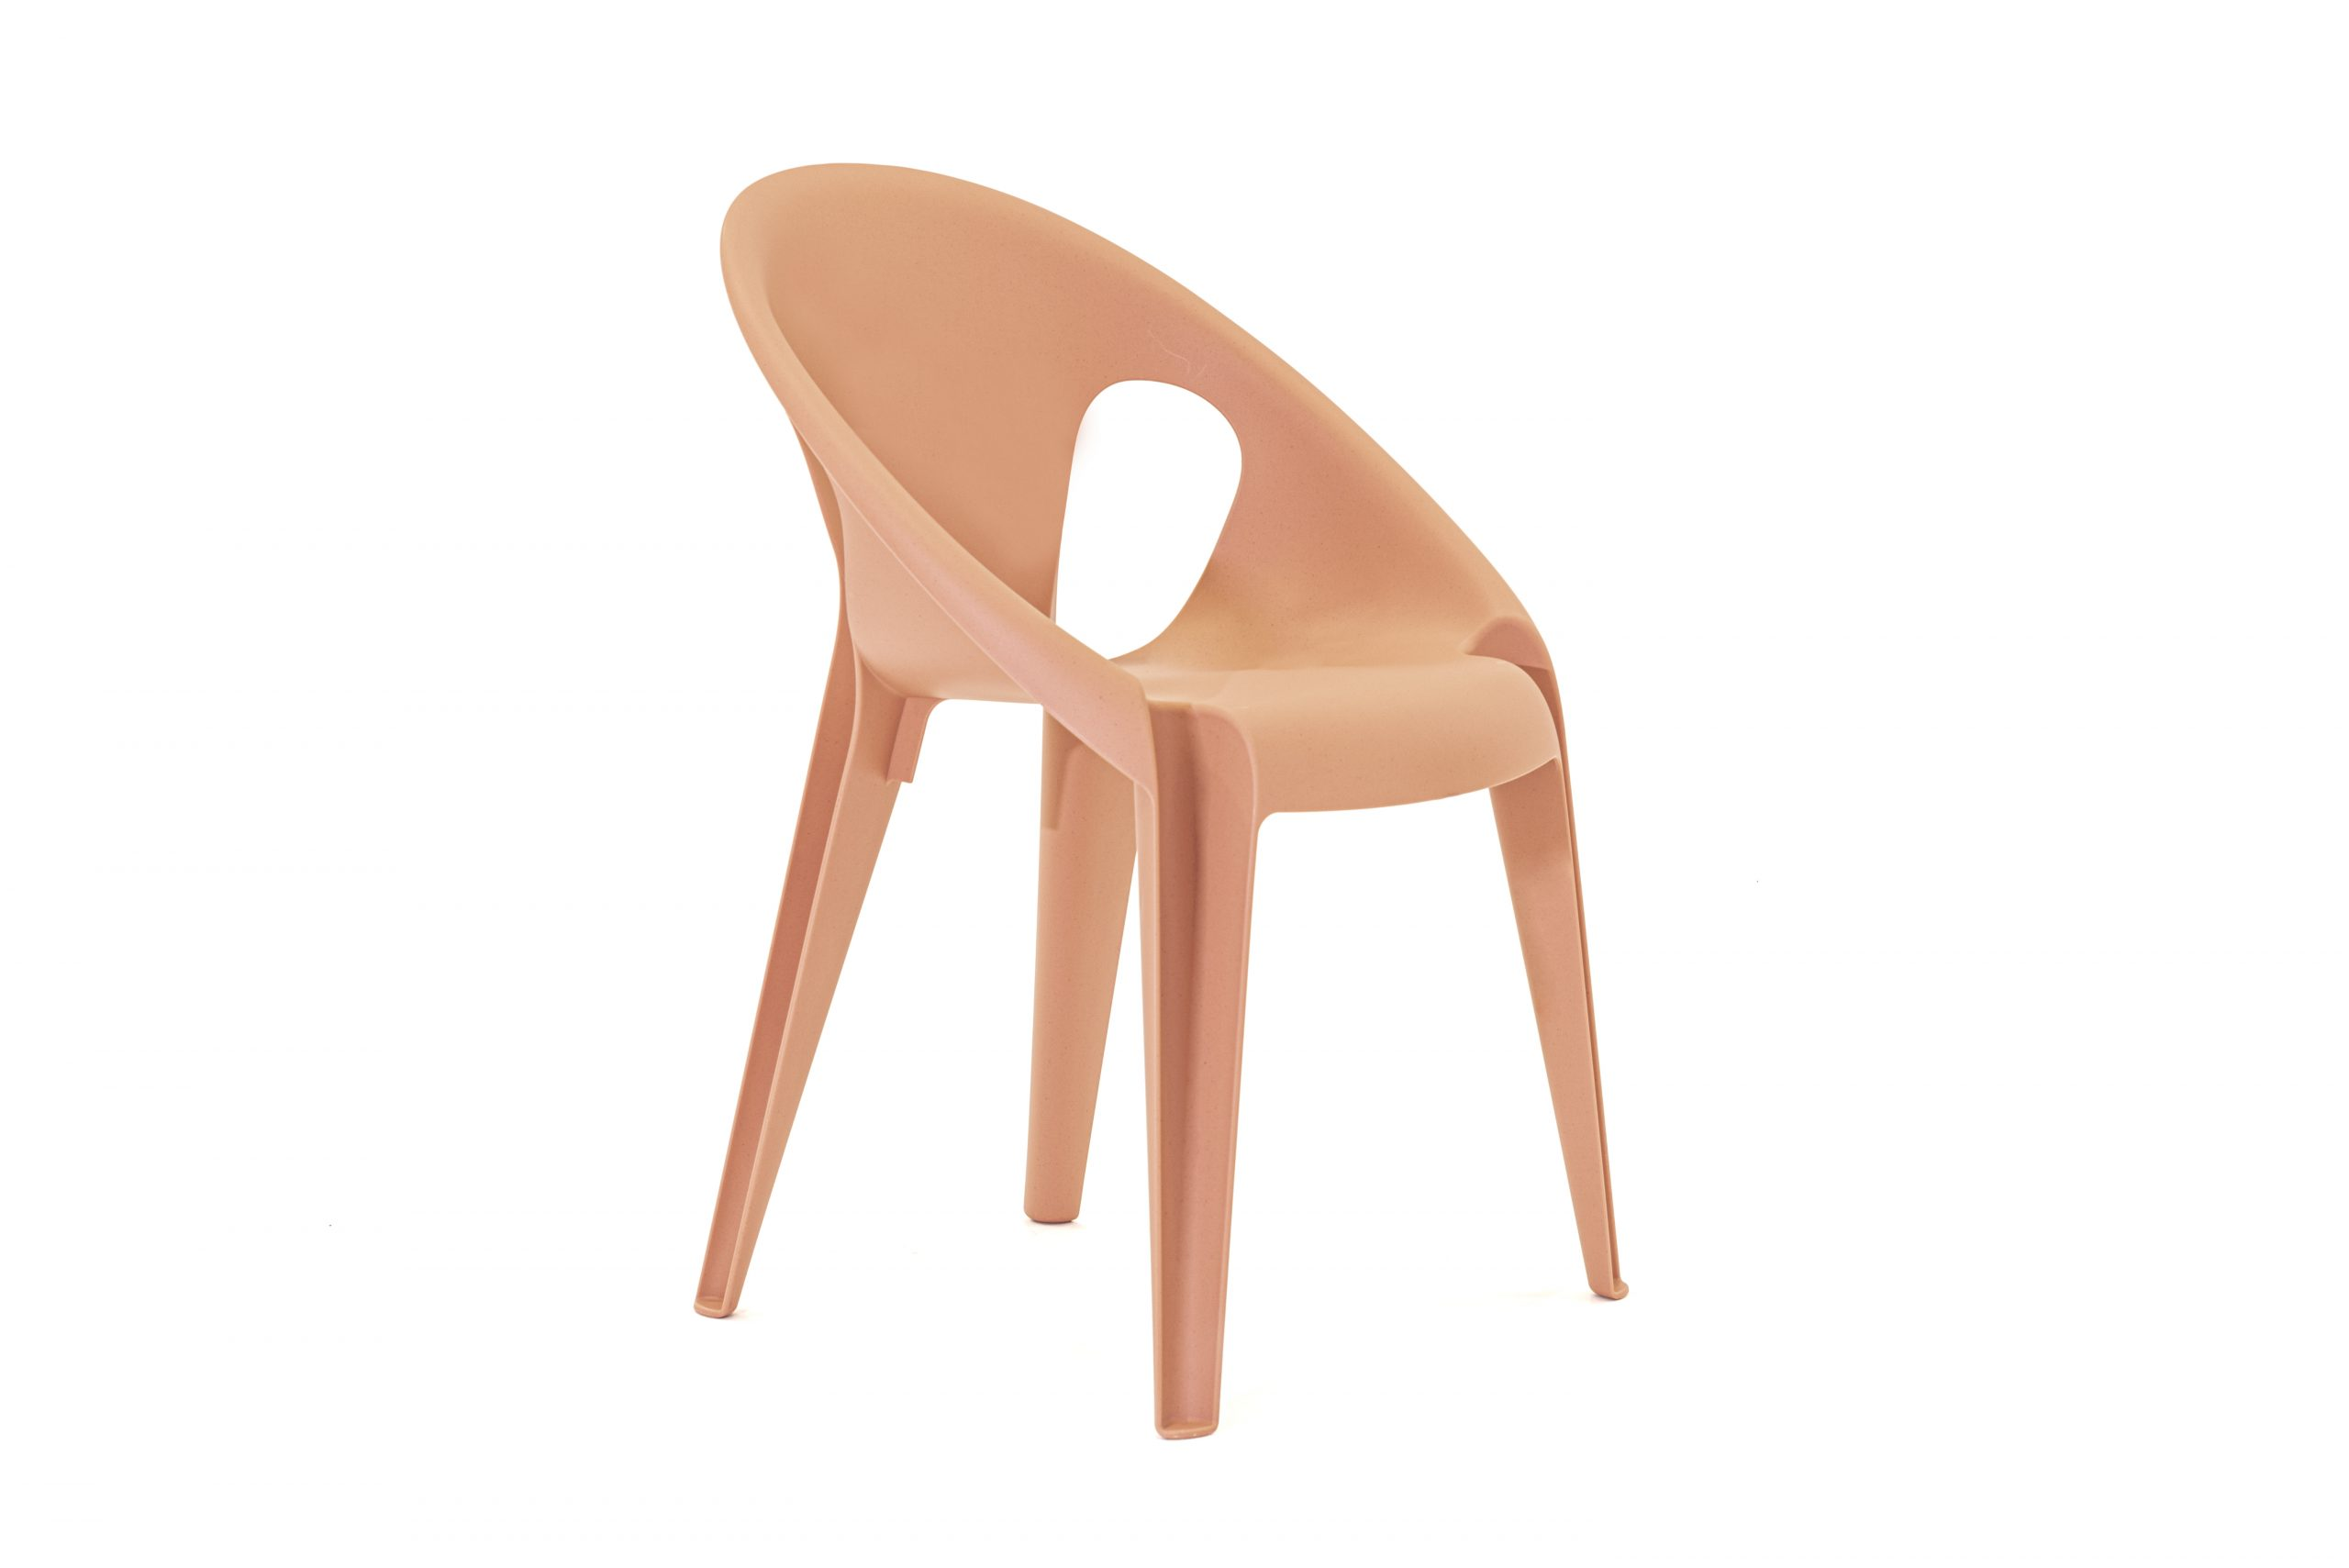 Sustainable Chairs — Eco-Friendly Design Meets Modern sustainable chairs Sustainable Chairs — Eco-Friendly Design Meets Modern Magis bell chair product lateral SD2900 sunrise orange 01 hr scaled